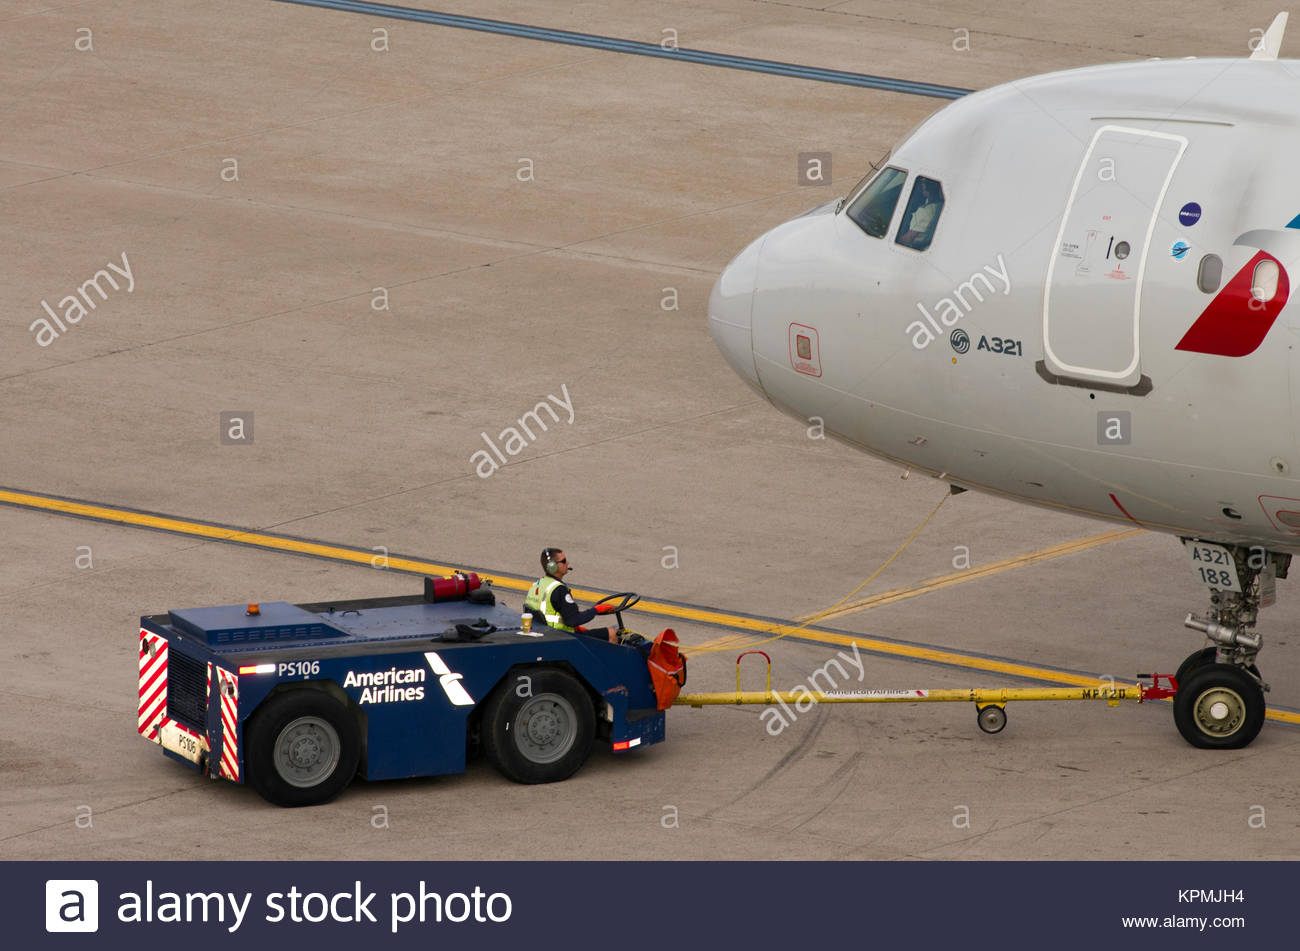 an aircraft push back tractor pushes a jet airplane away from the